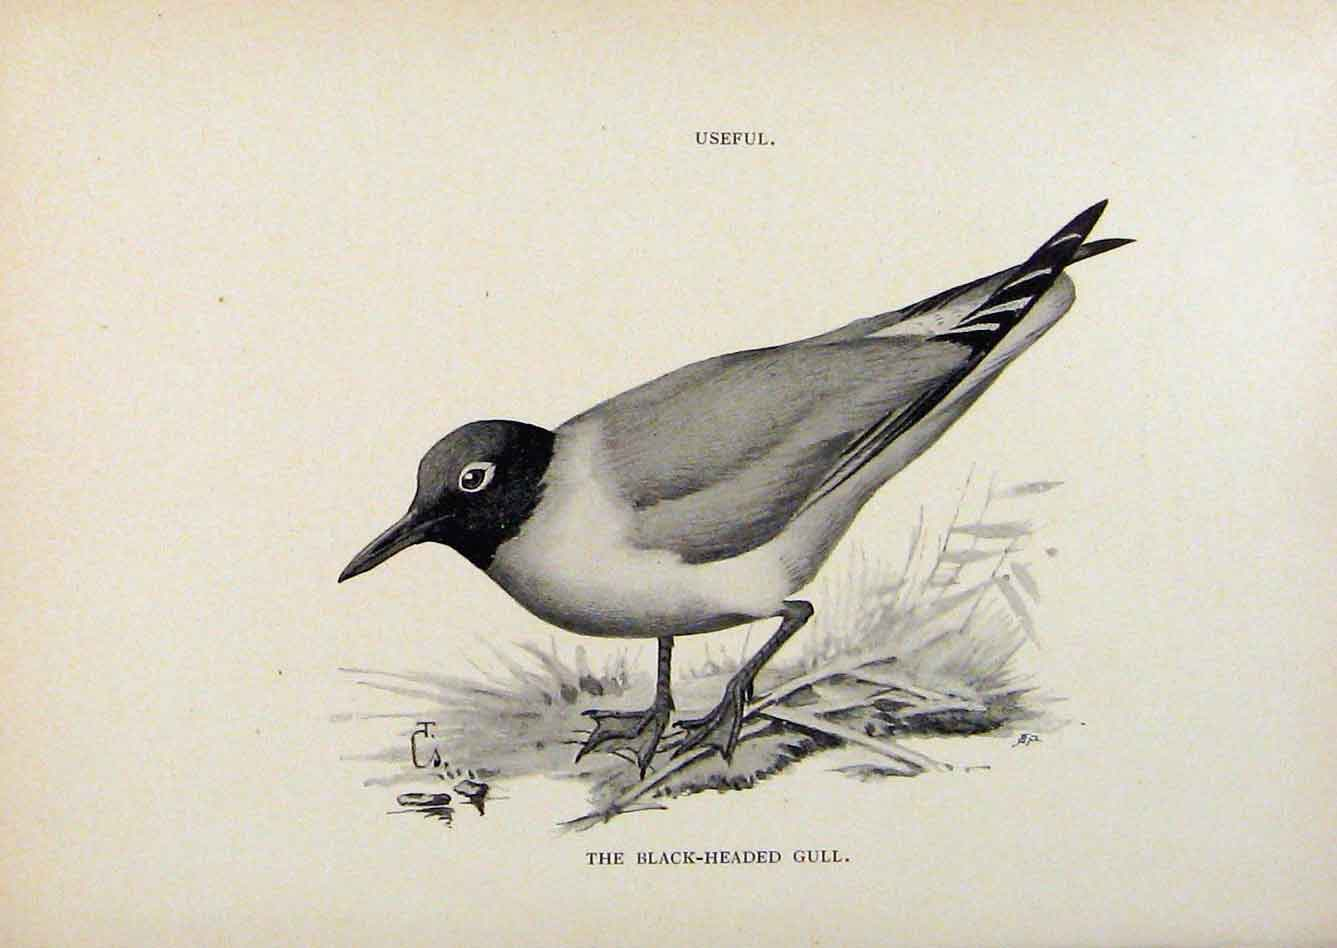 Print Birds Useful And Harmful Black Headed Gull By Csorgey 748291 Old Original